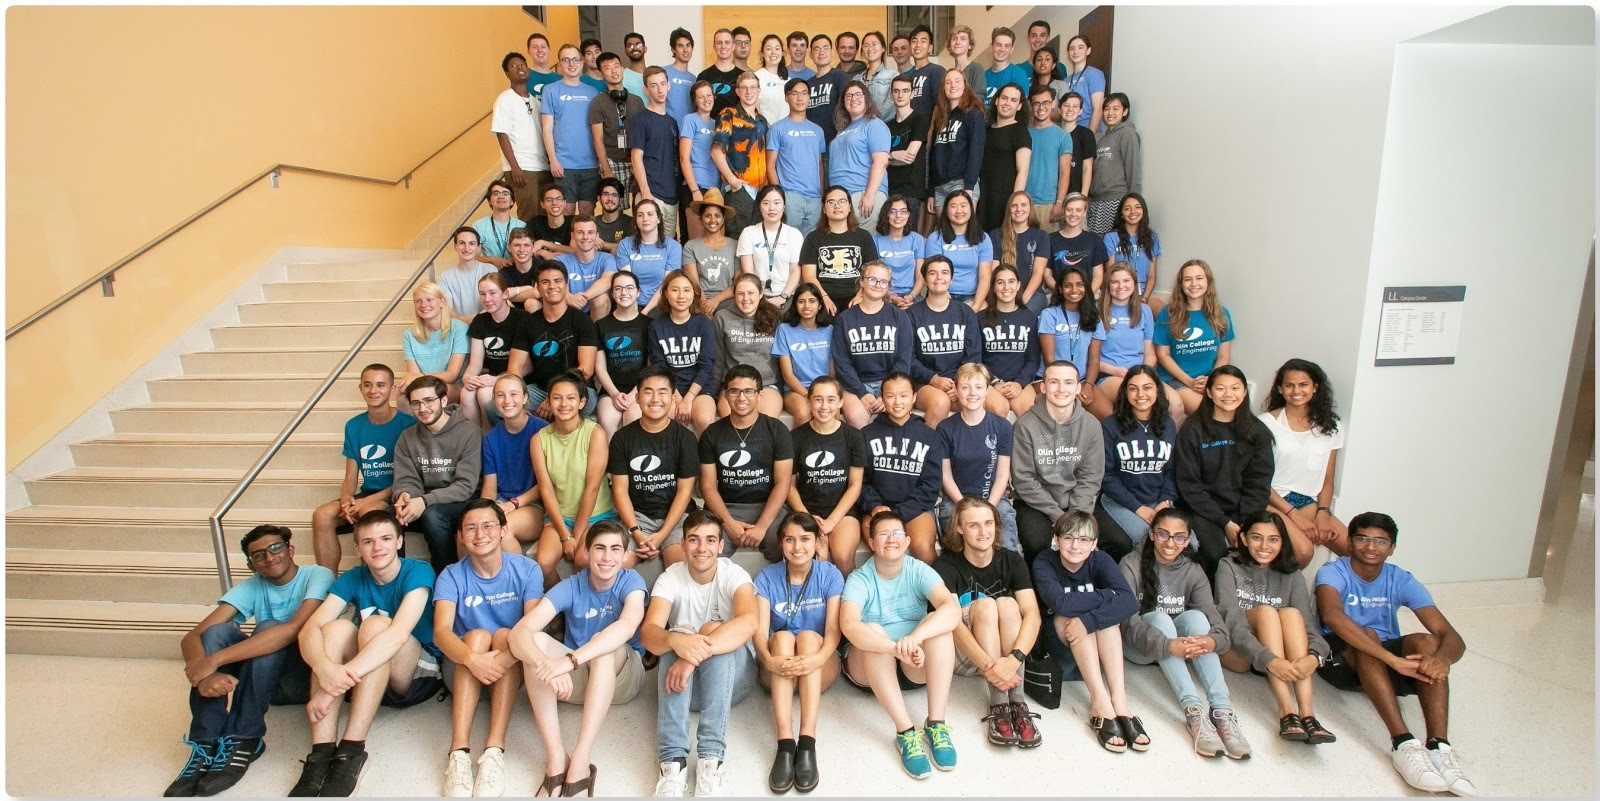 A group picture of a bunch of students, many of whom are wearing Olin shirts.